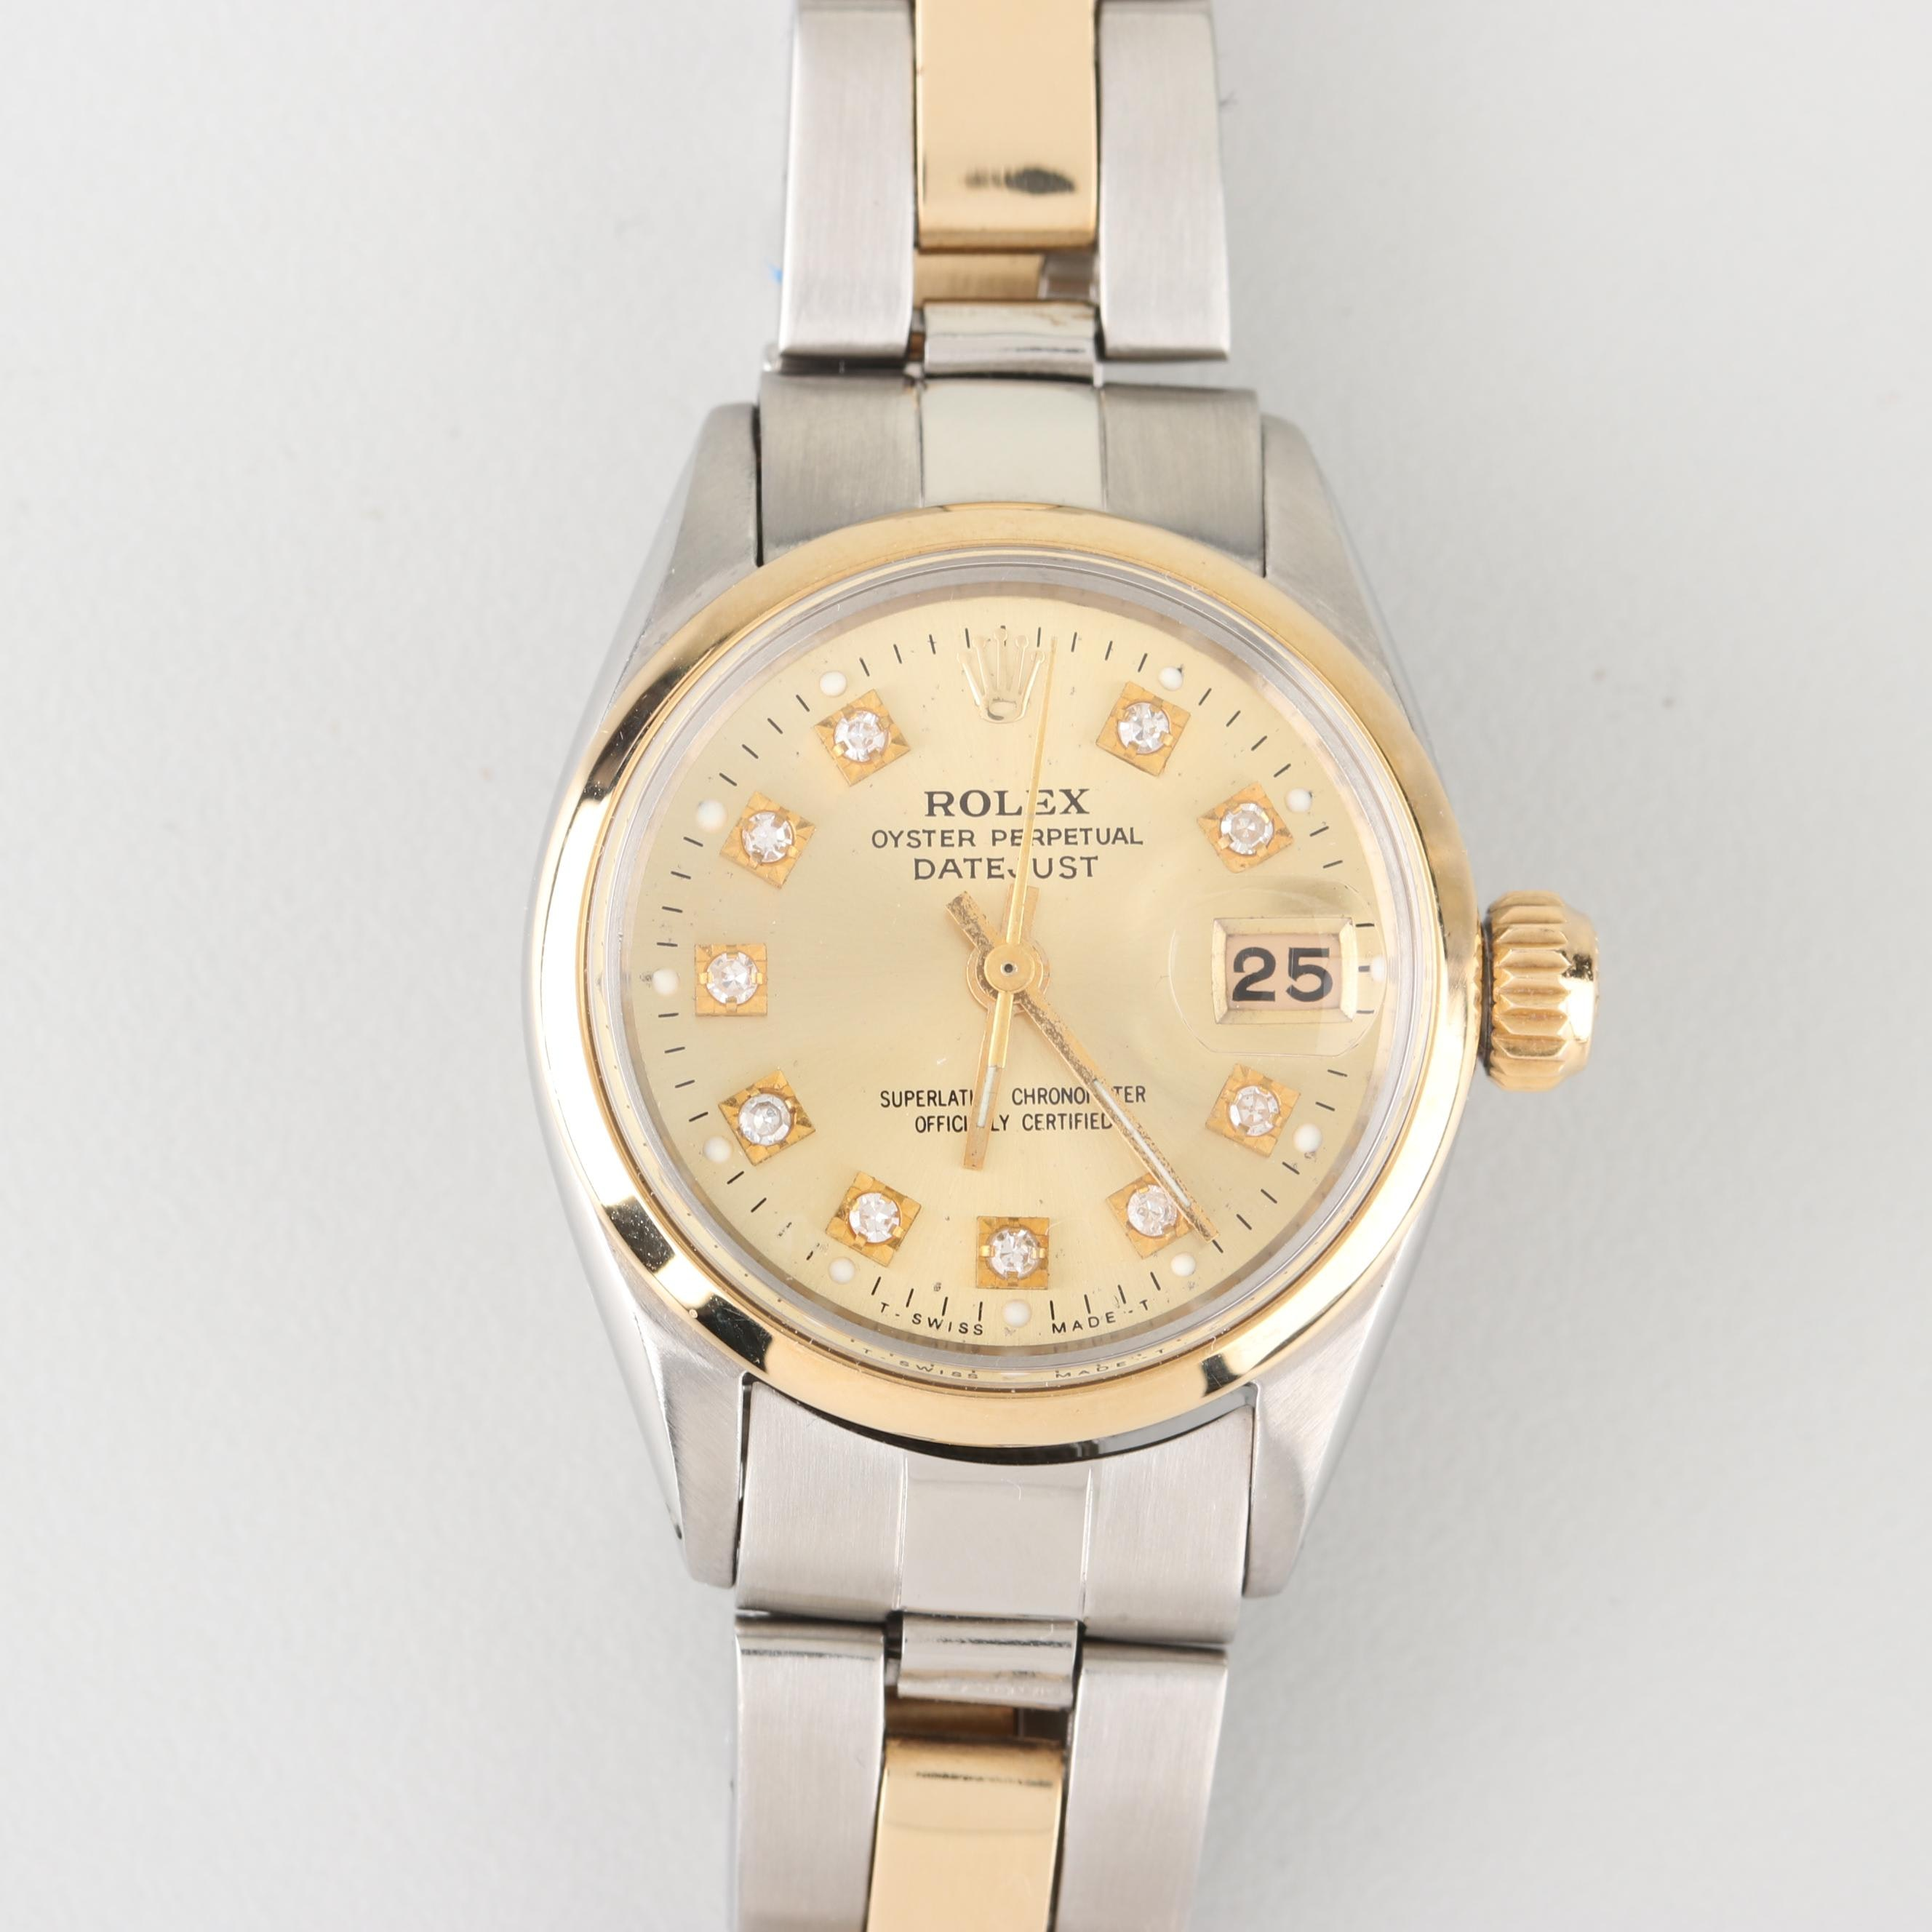 Rolex Datejust 18K Yellow Gold, Stainless Steel, and Diamond Wristwatch